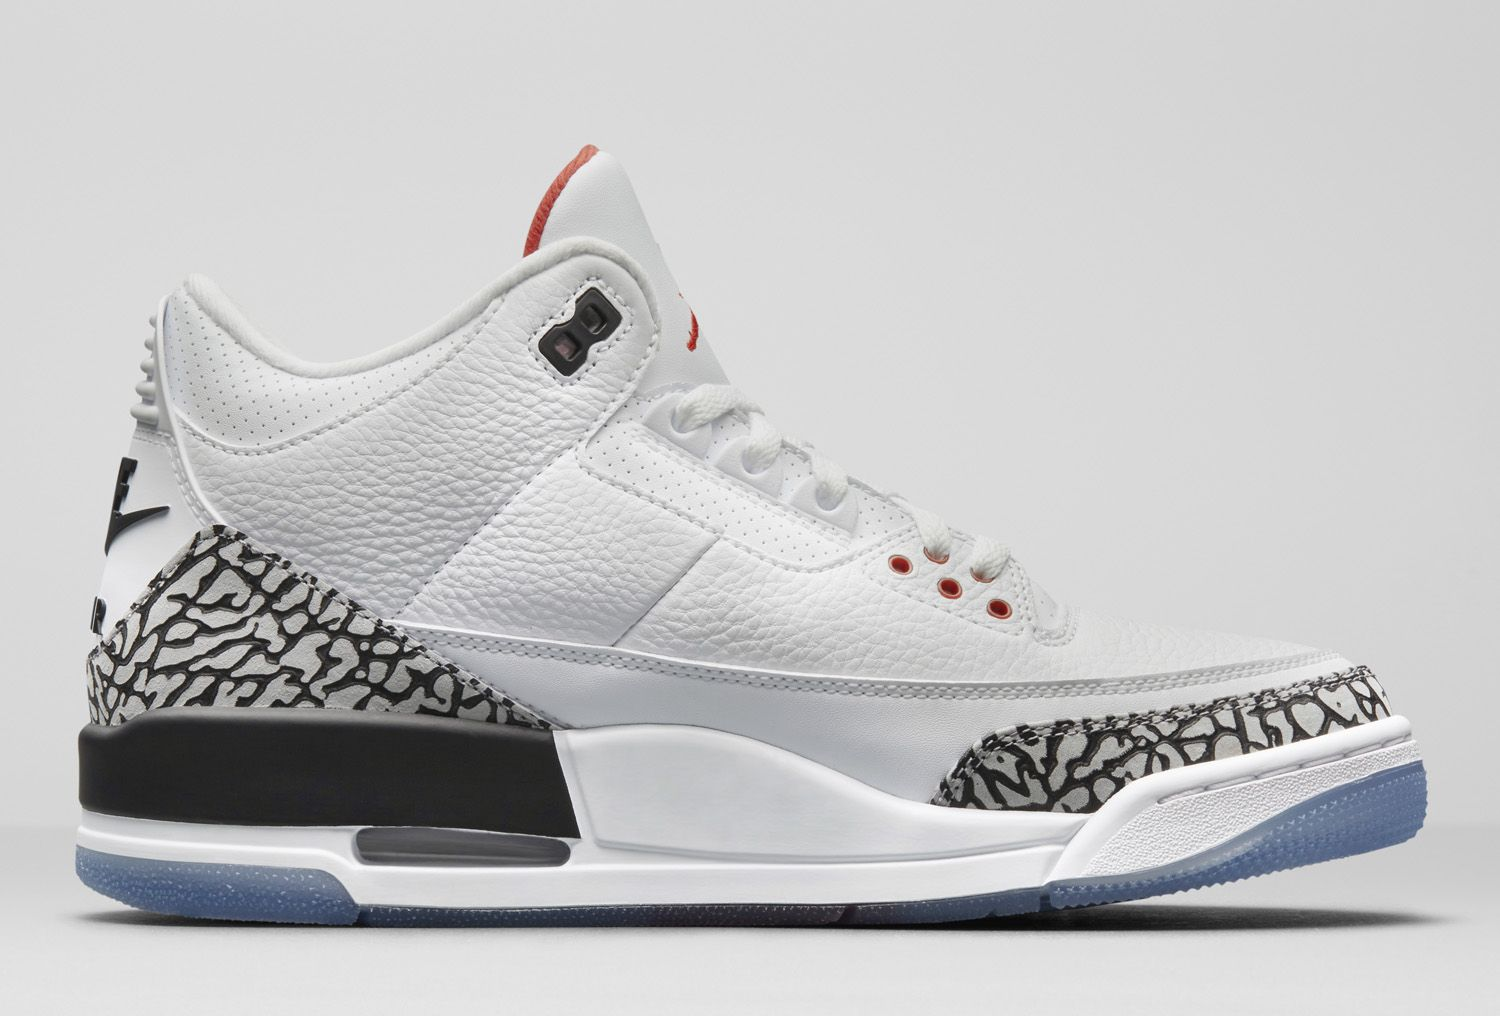 2734313dbdd The Air Jordan 3 'White Cement' NRG Celebrates MJ's Jump From the Free  Throw Line - WearTesters